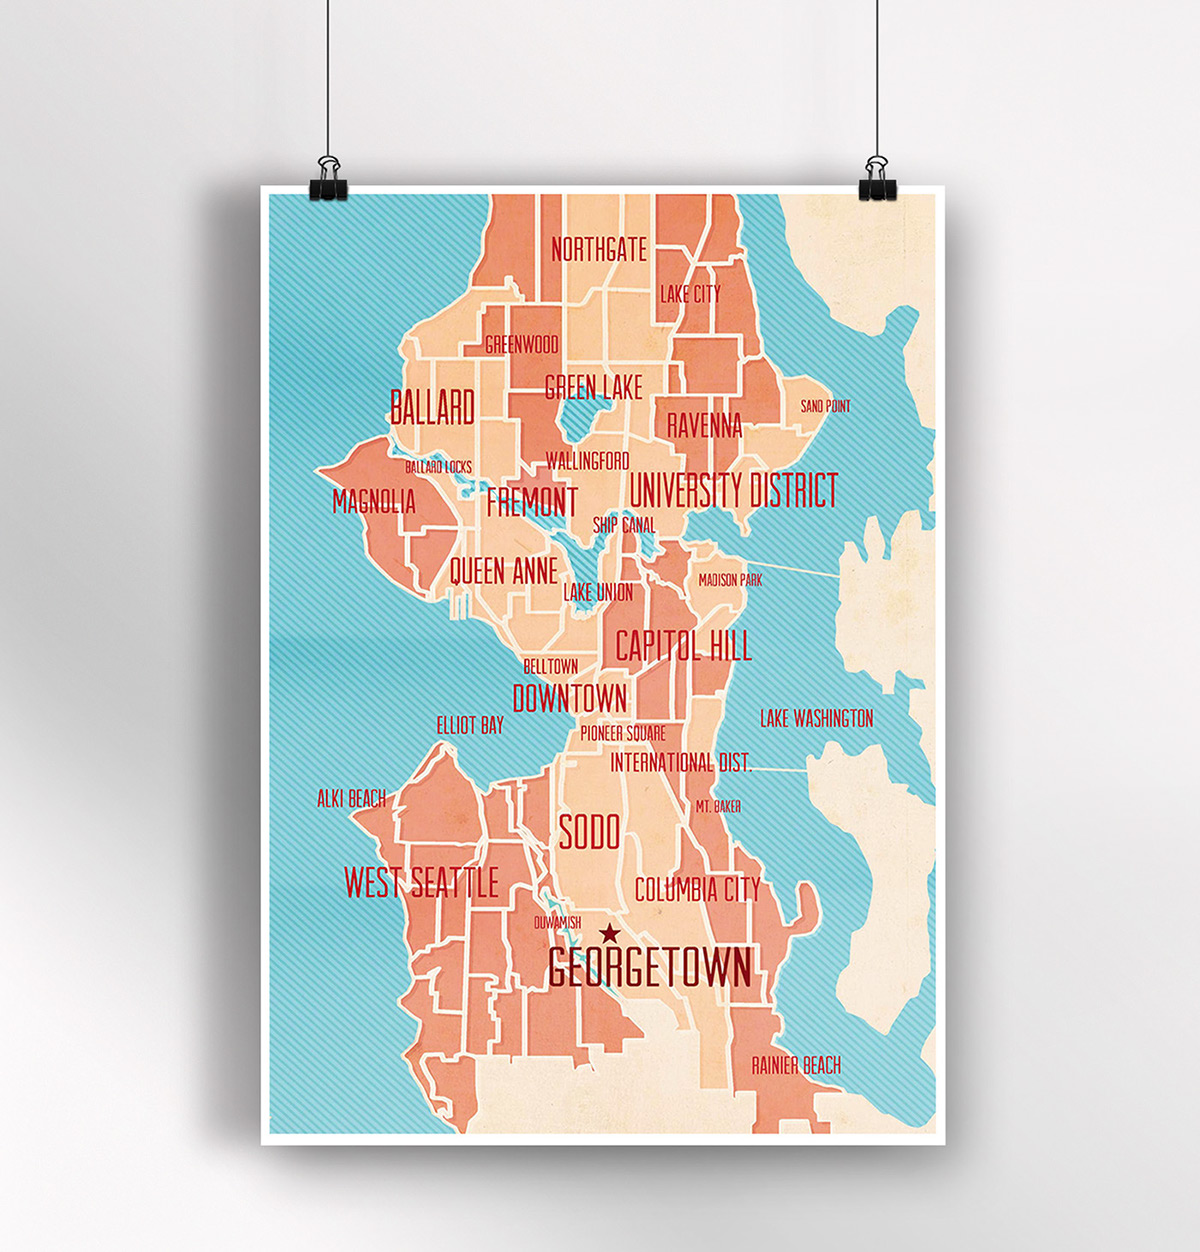 Seattle Map Project / Neighborhoods on Behance